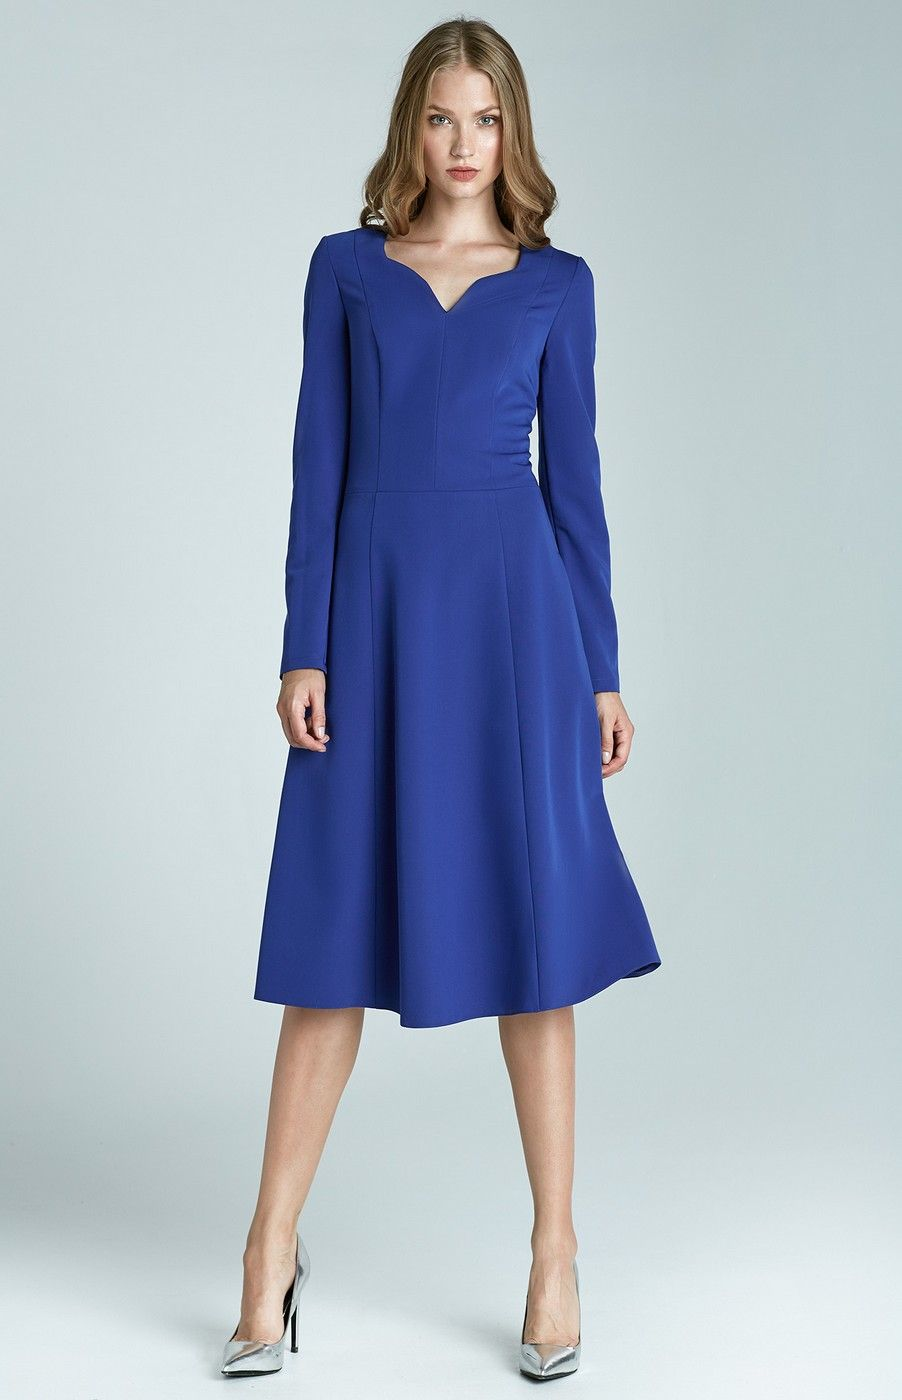 Excellent long sleeve cocktail dresses blue long sleeve cocktail